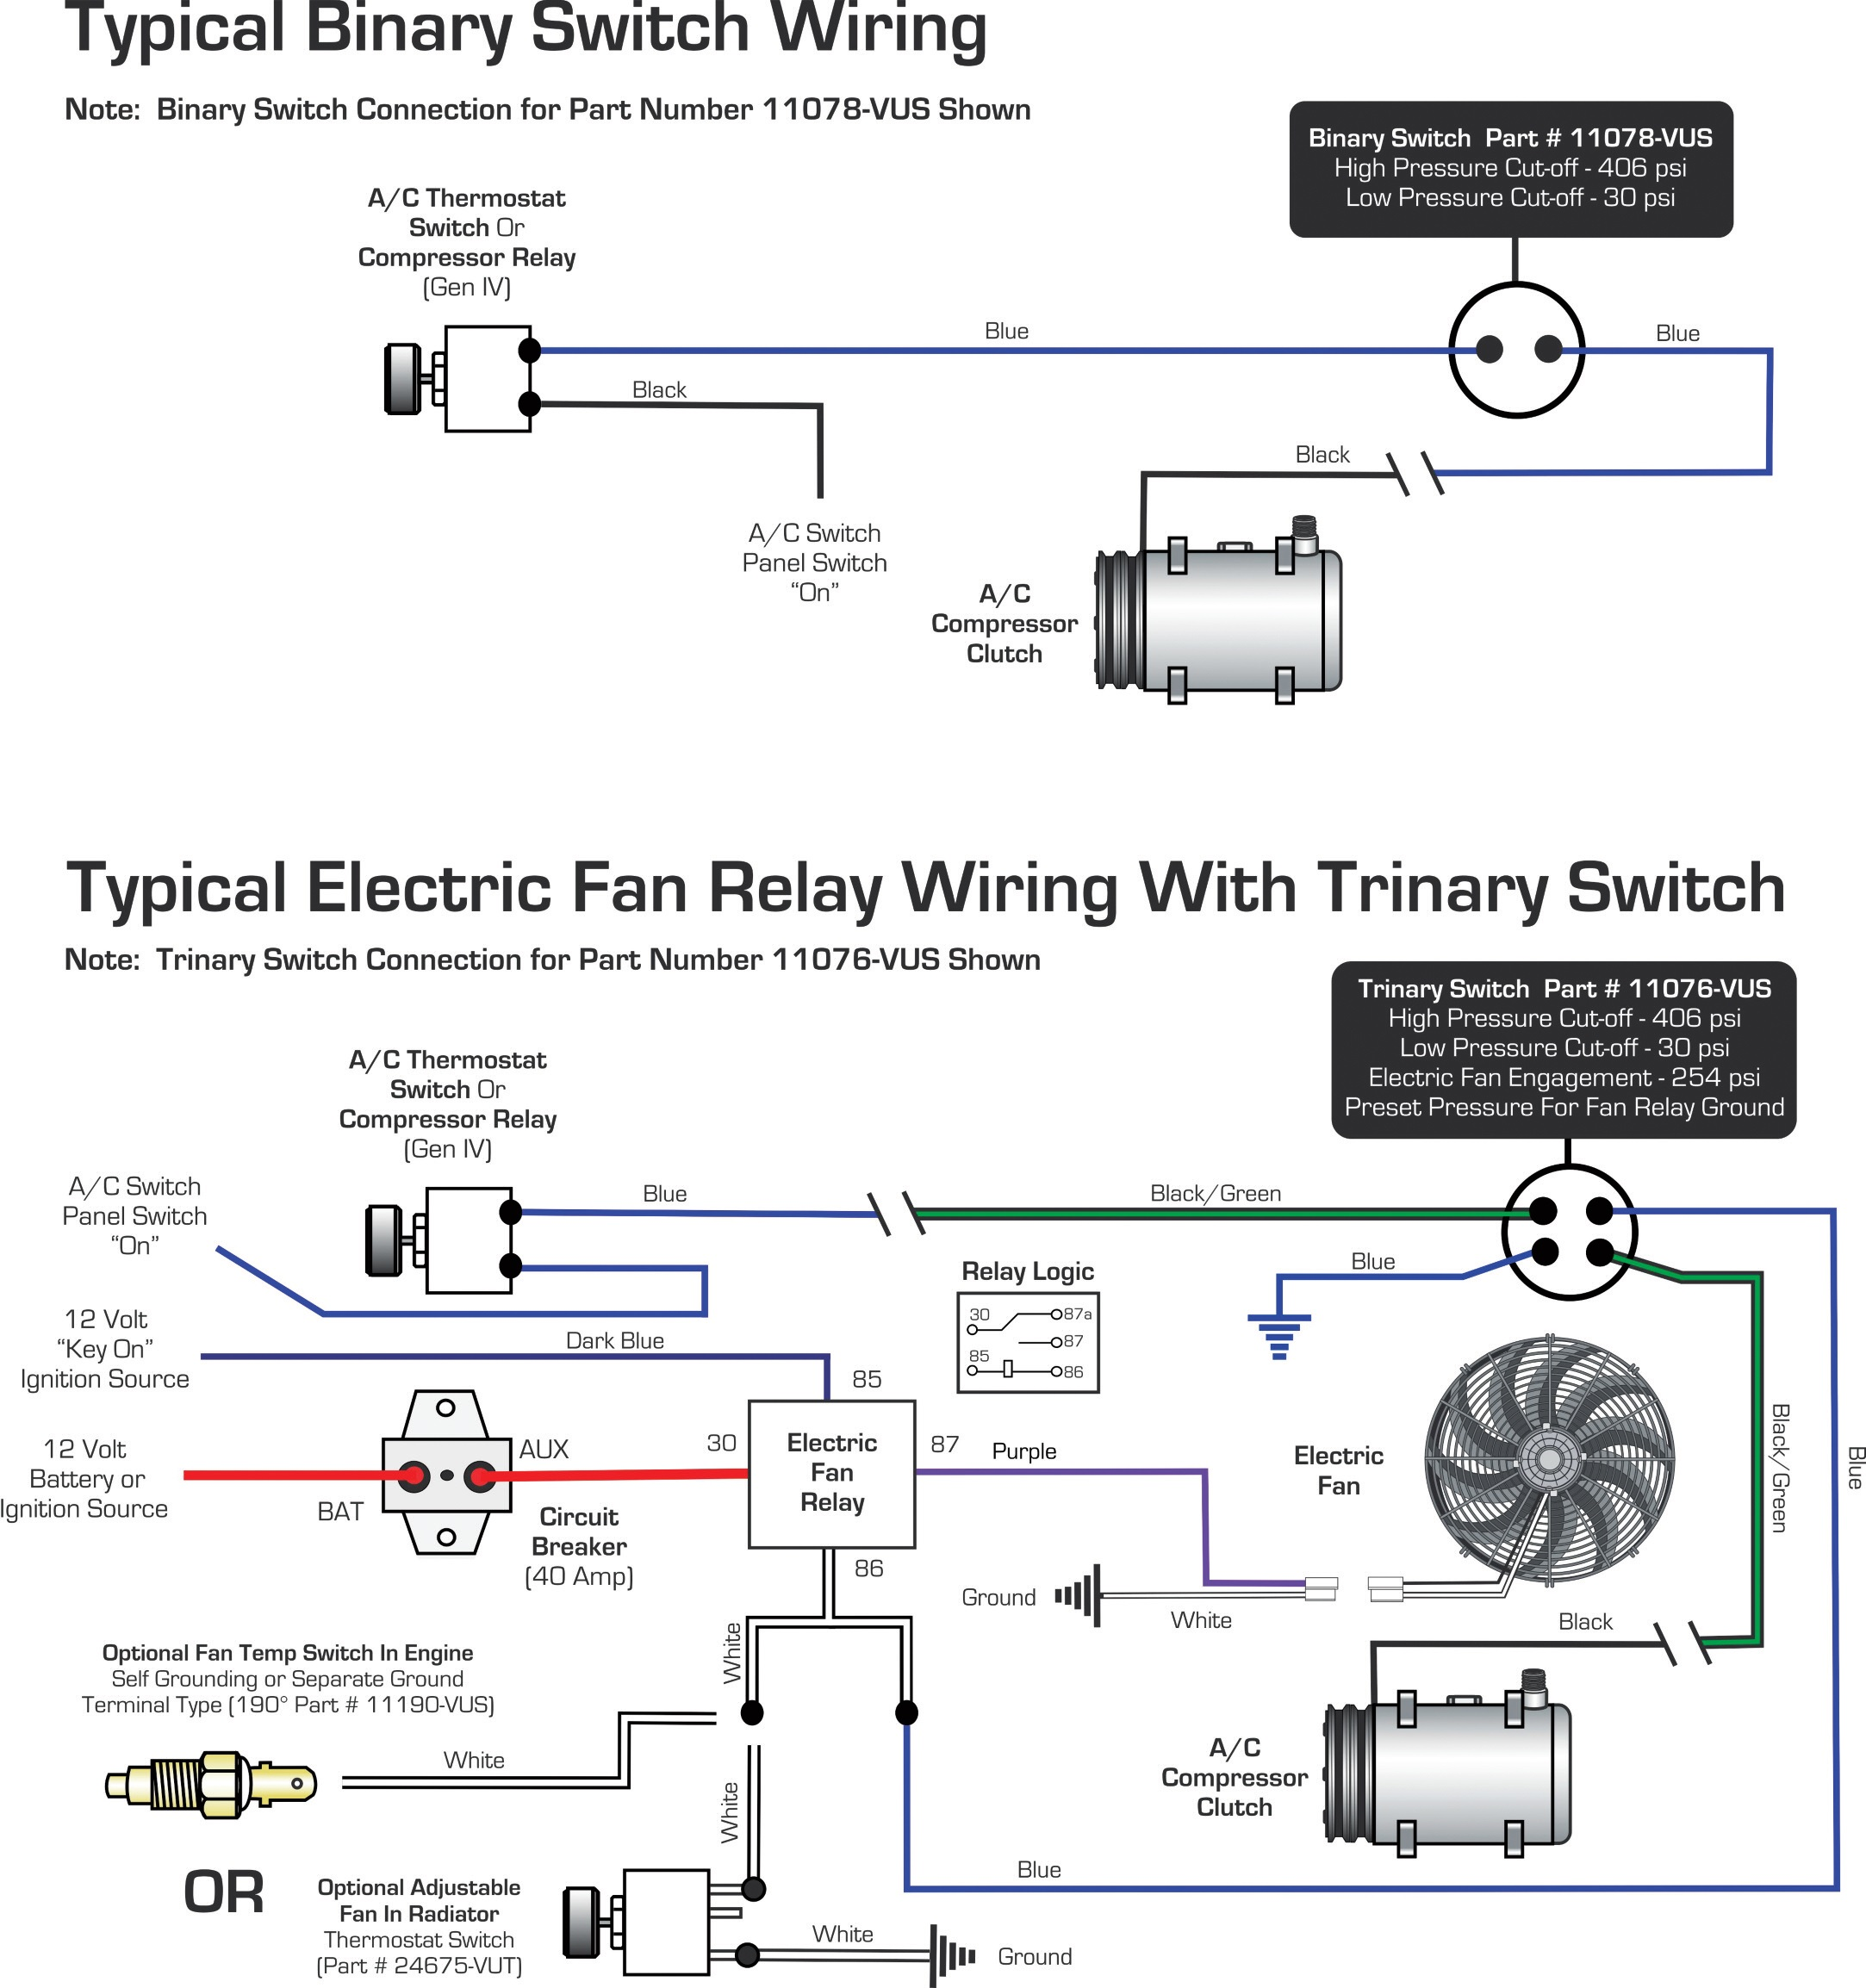 Electric Fan Relay And Trinary Switch Wiring